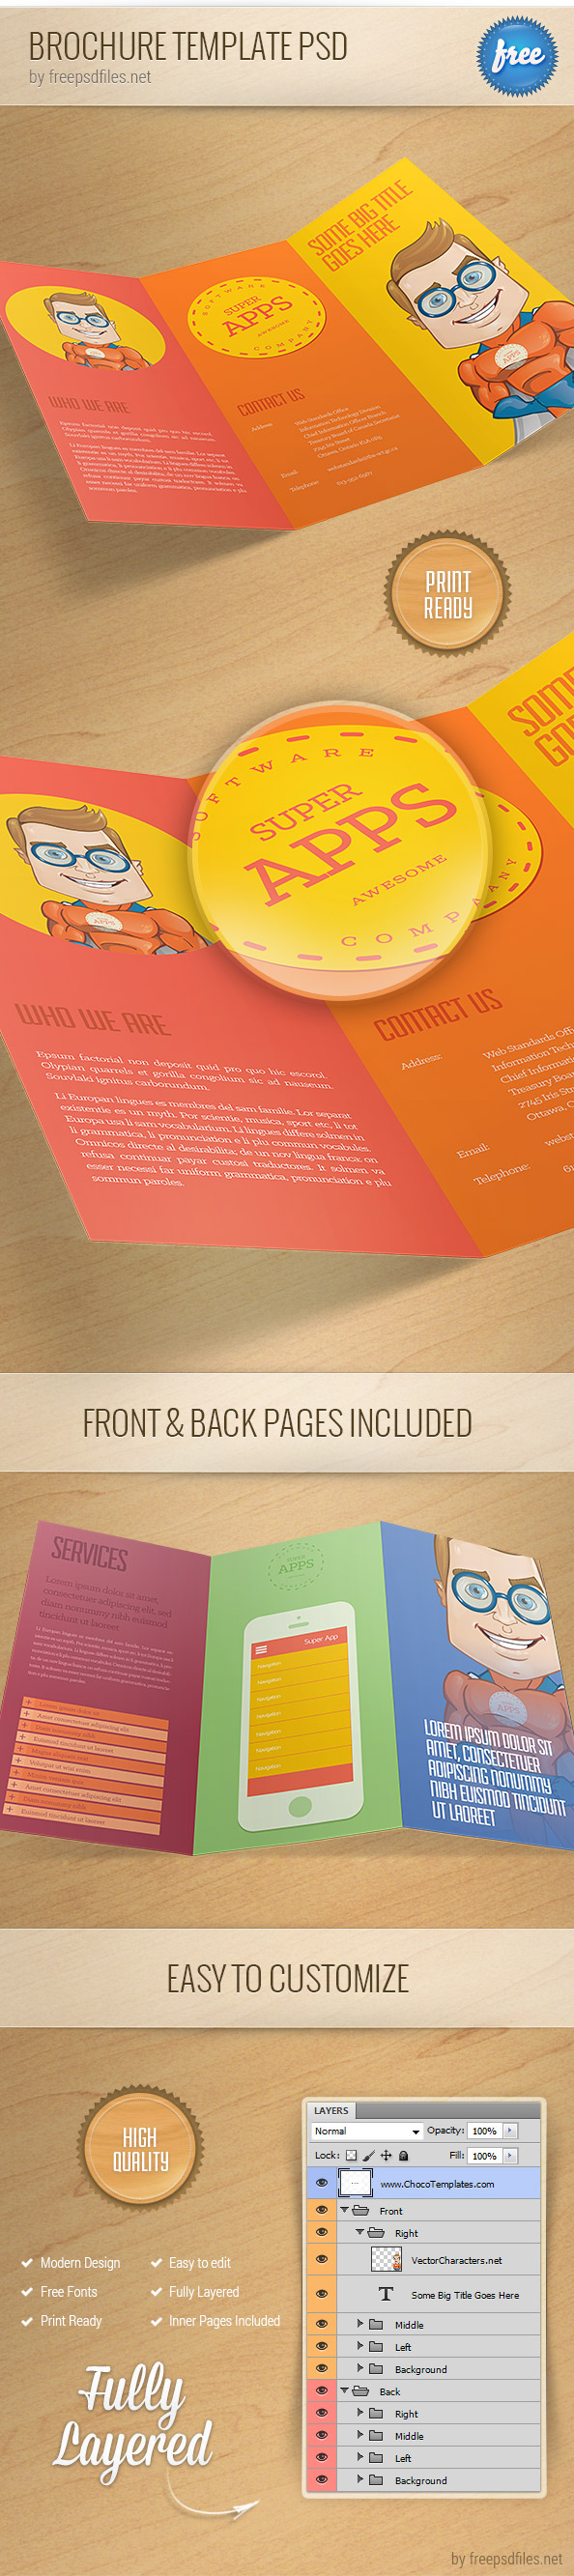 Beautiful free psd brochure design templates 2014 for Psd template brochure